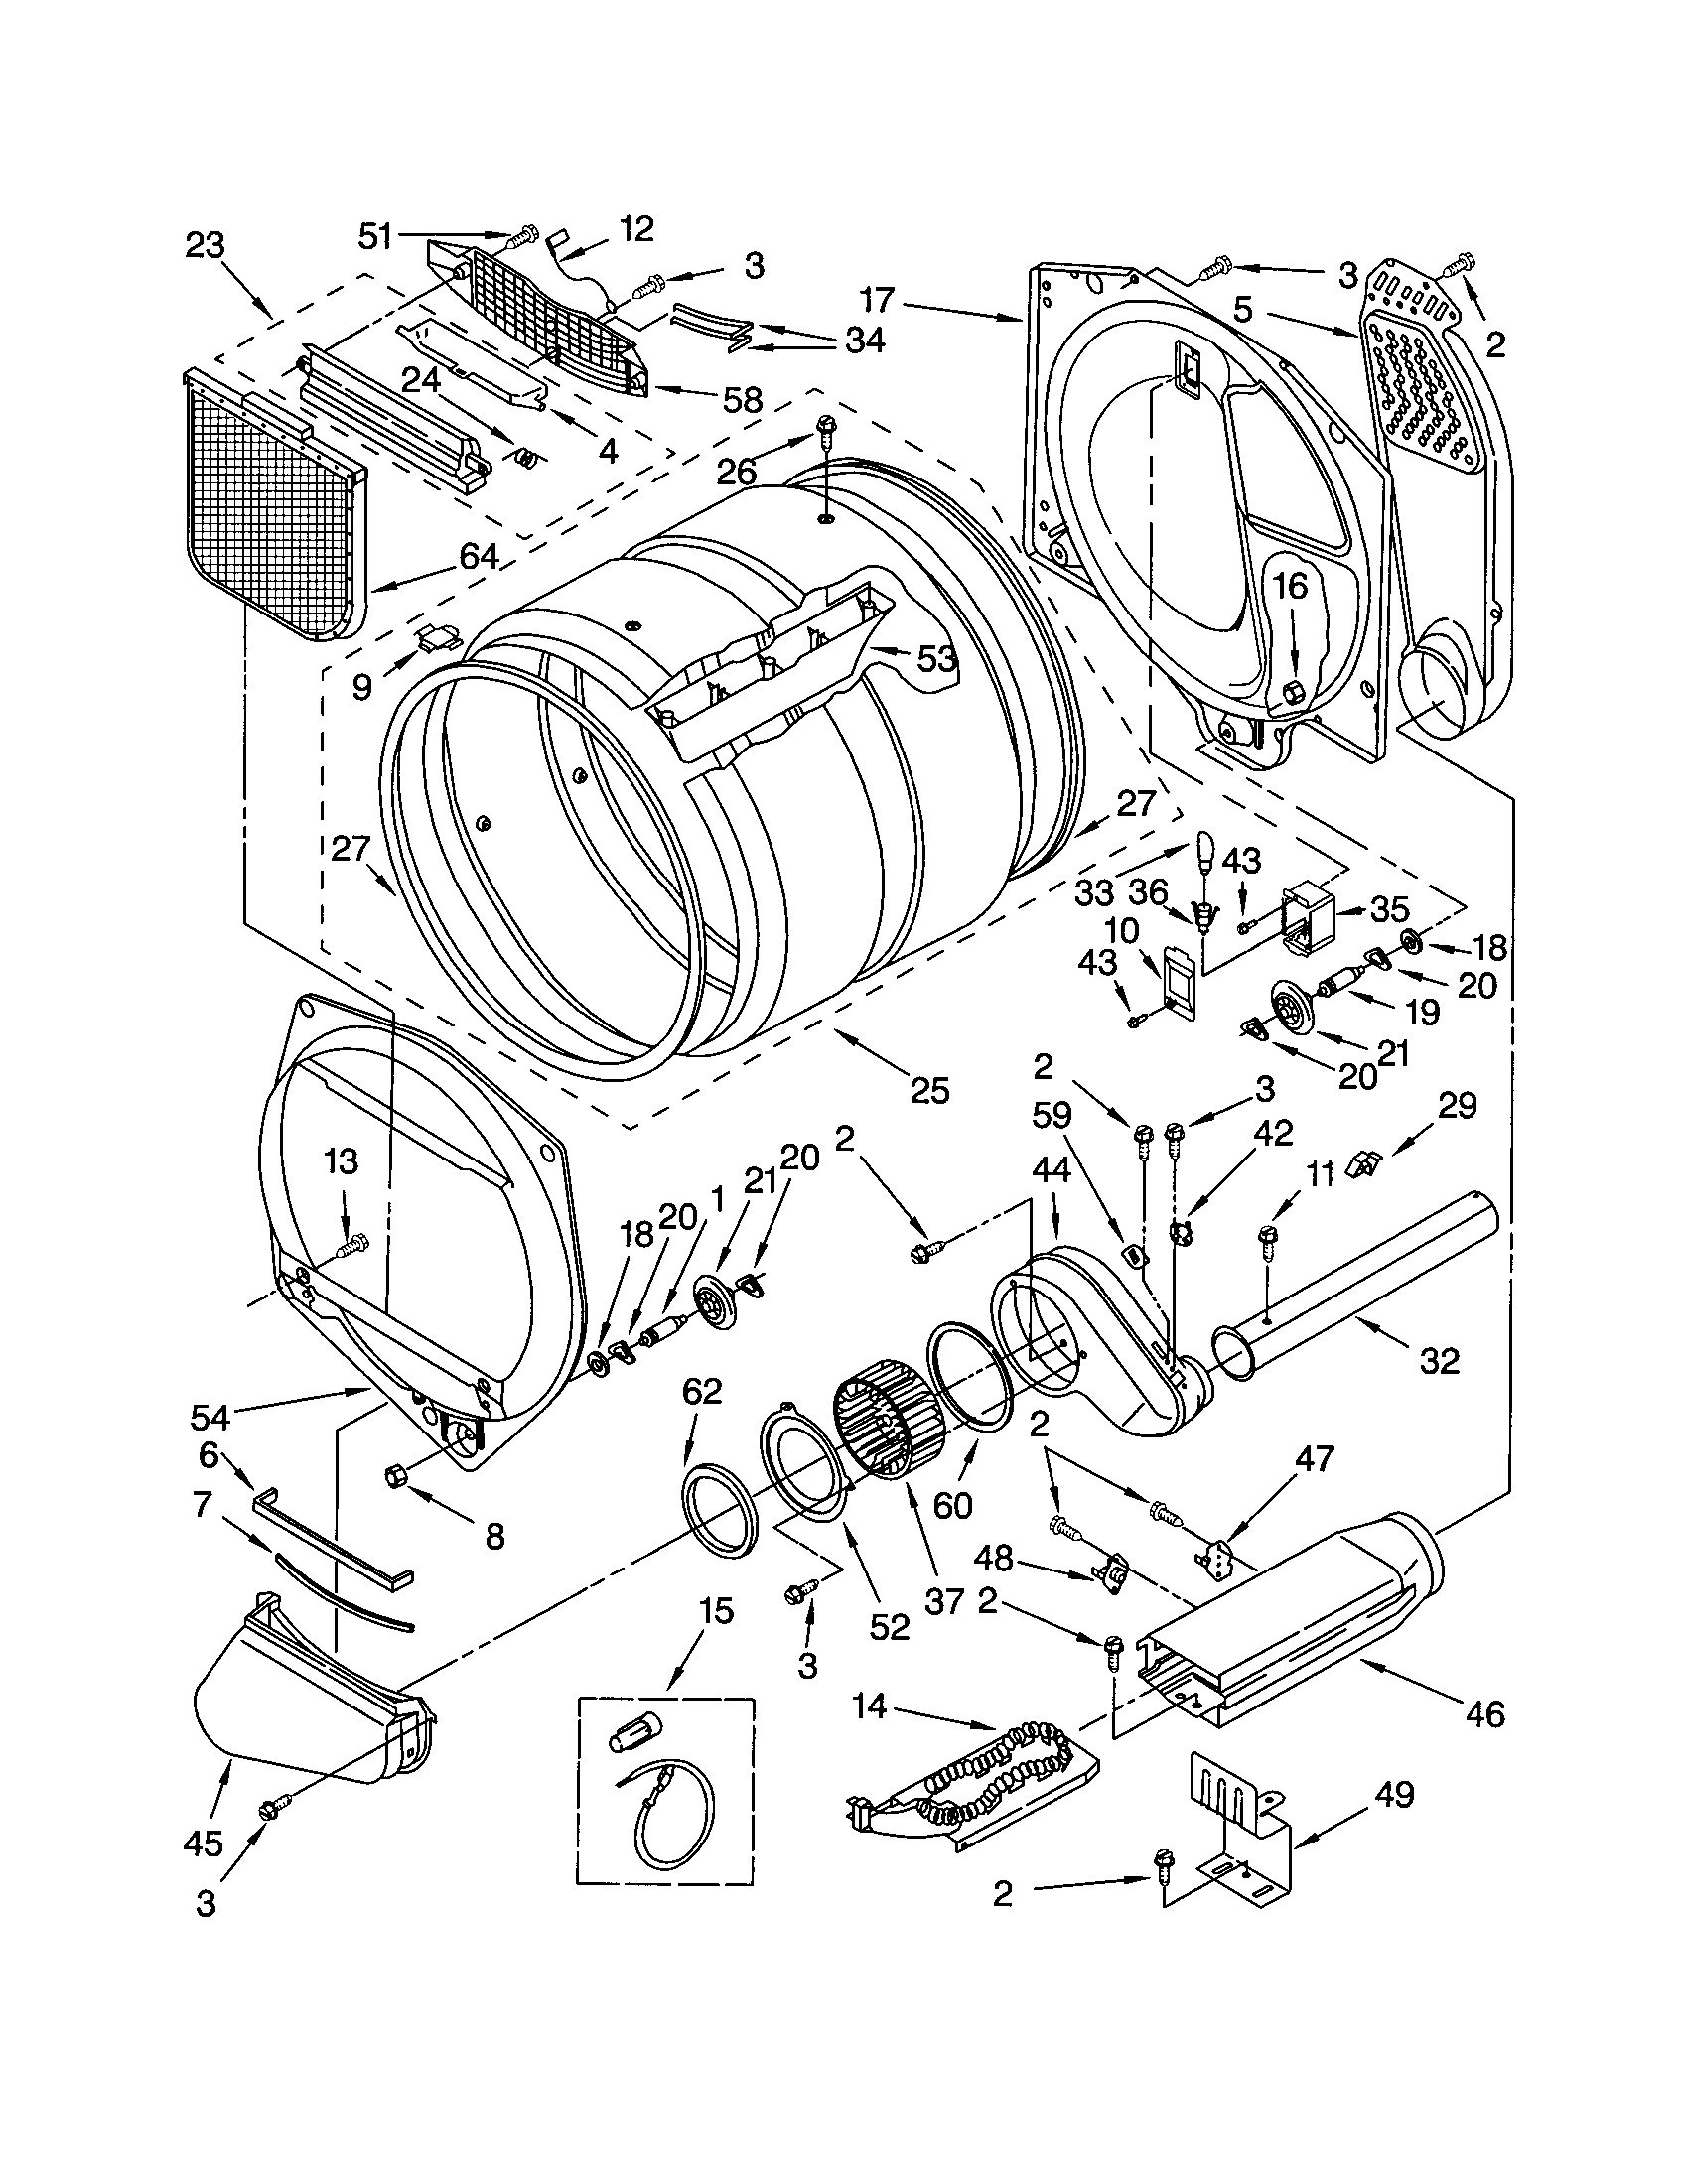 P0203276 00003?resize\\\\\\\\\\\\\\\=665%2C863 admiral dryer wiring diagram amana dryer wire diagram, admiral admiral dryer aed4475tq1 wiring diagram at bakdesigns.co